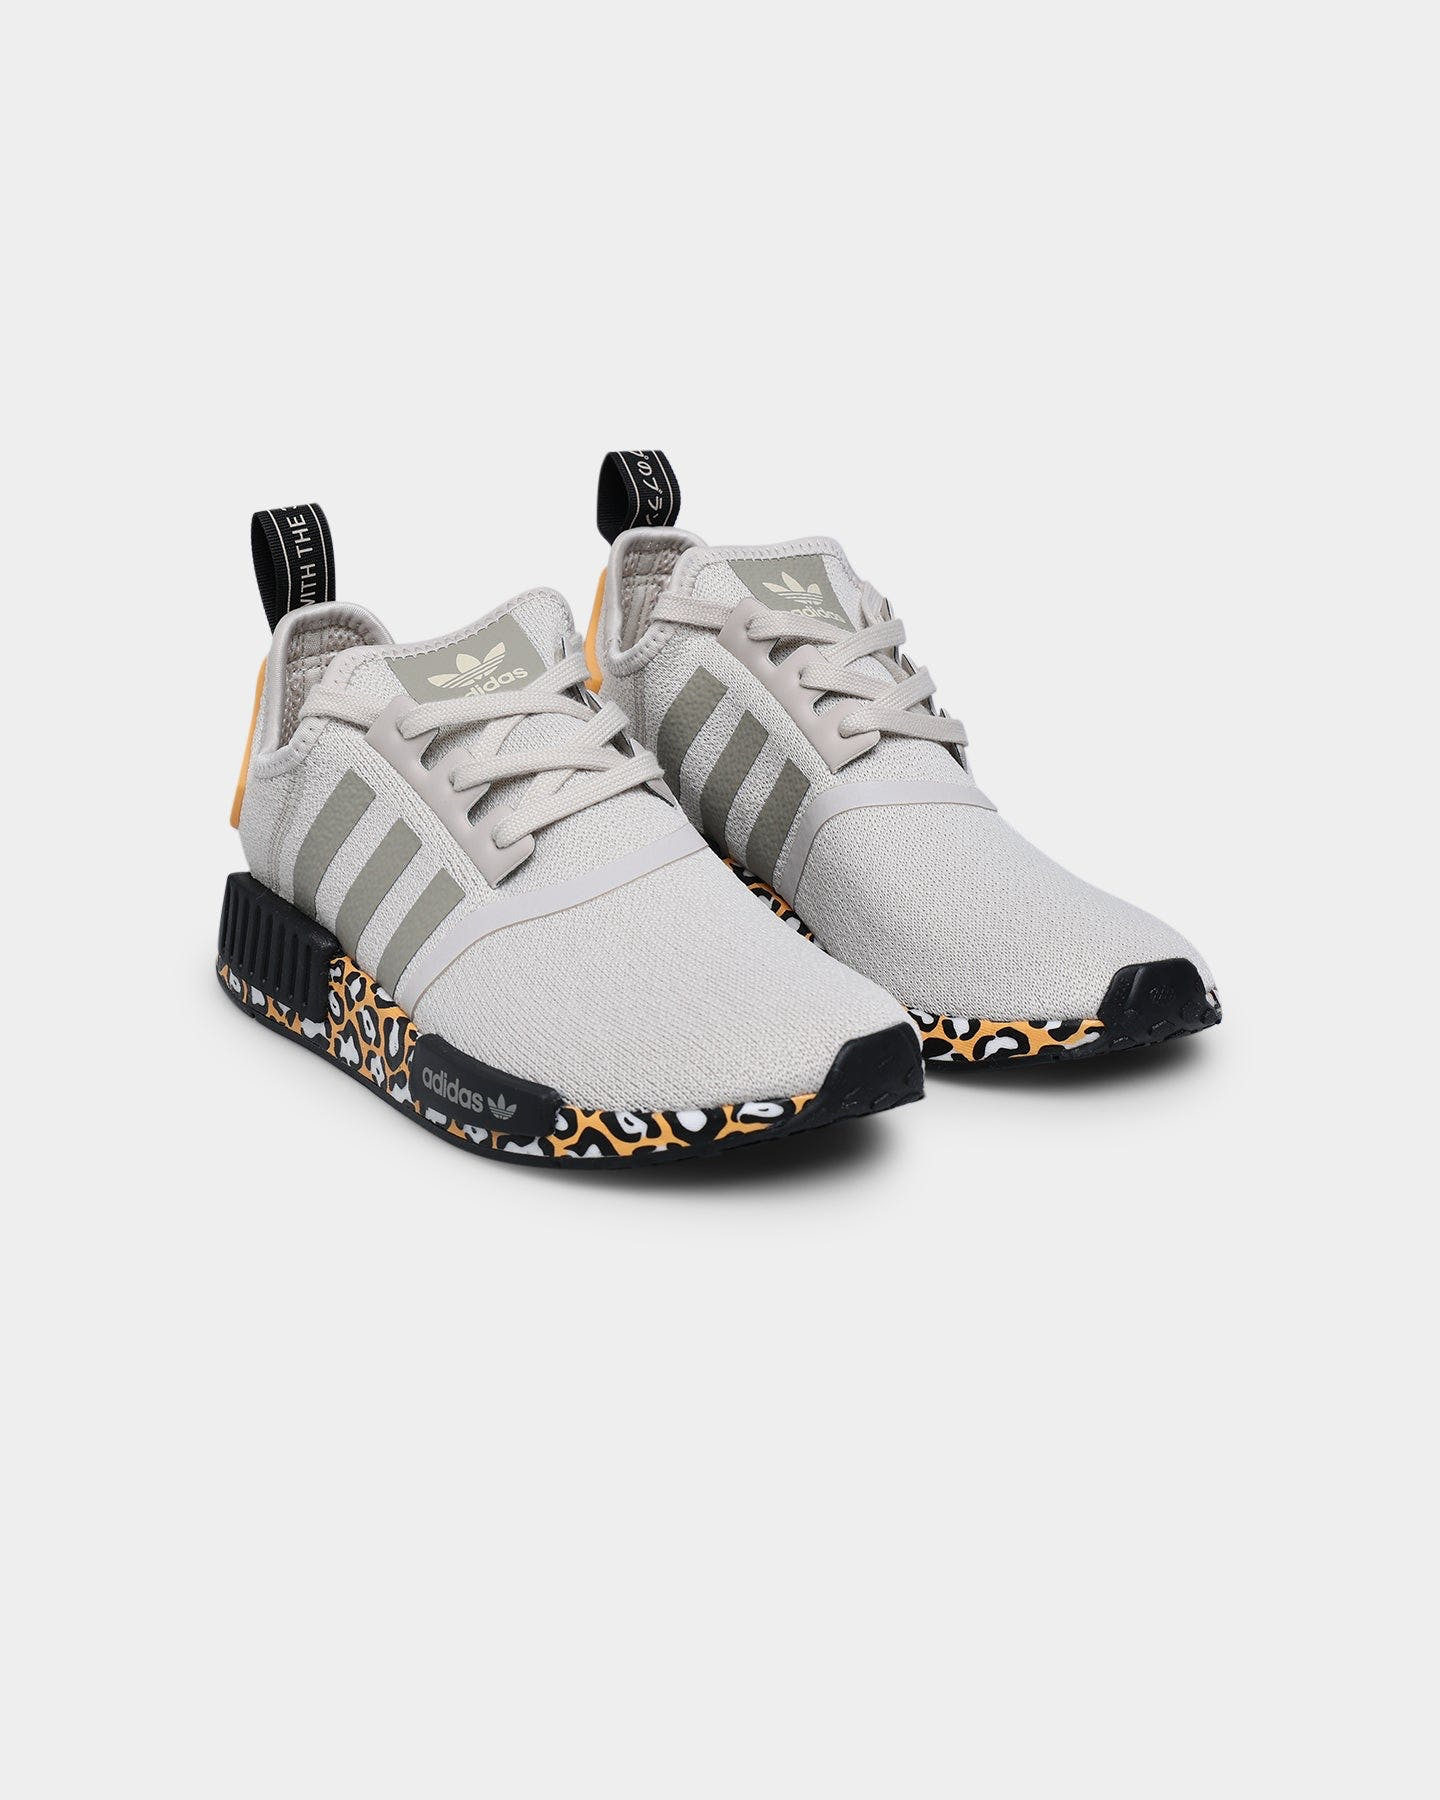 ADIDAS NMD_R1 Womens Nude & White Shoes - NUDE - FW6431